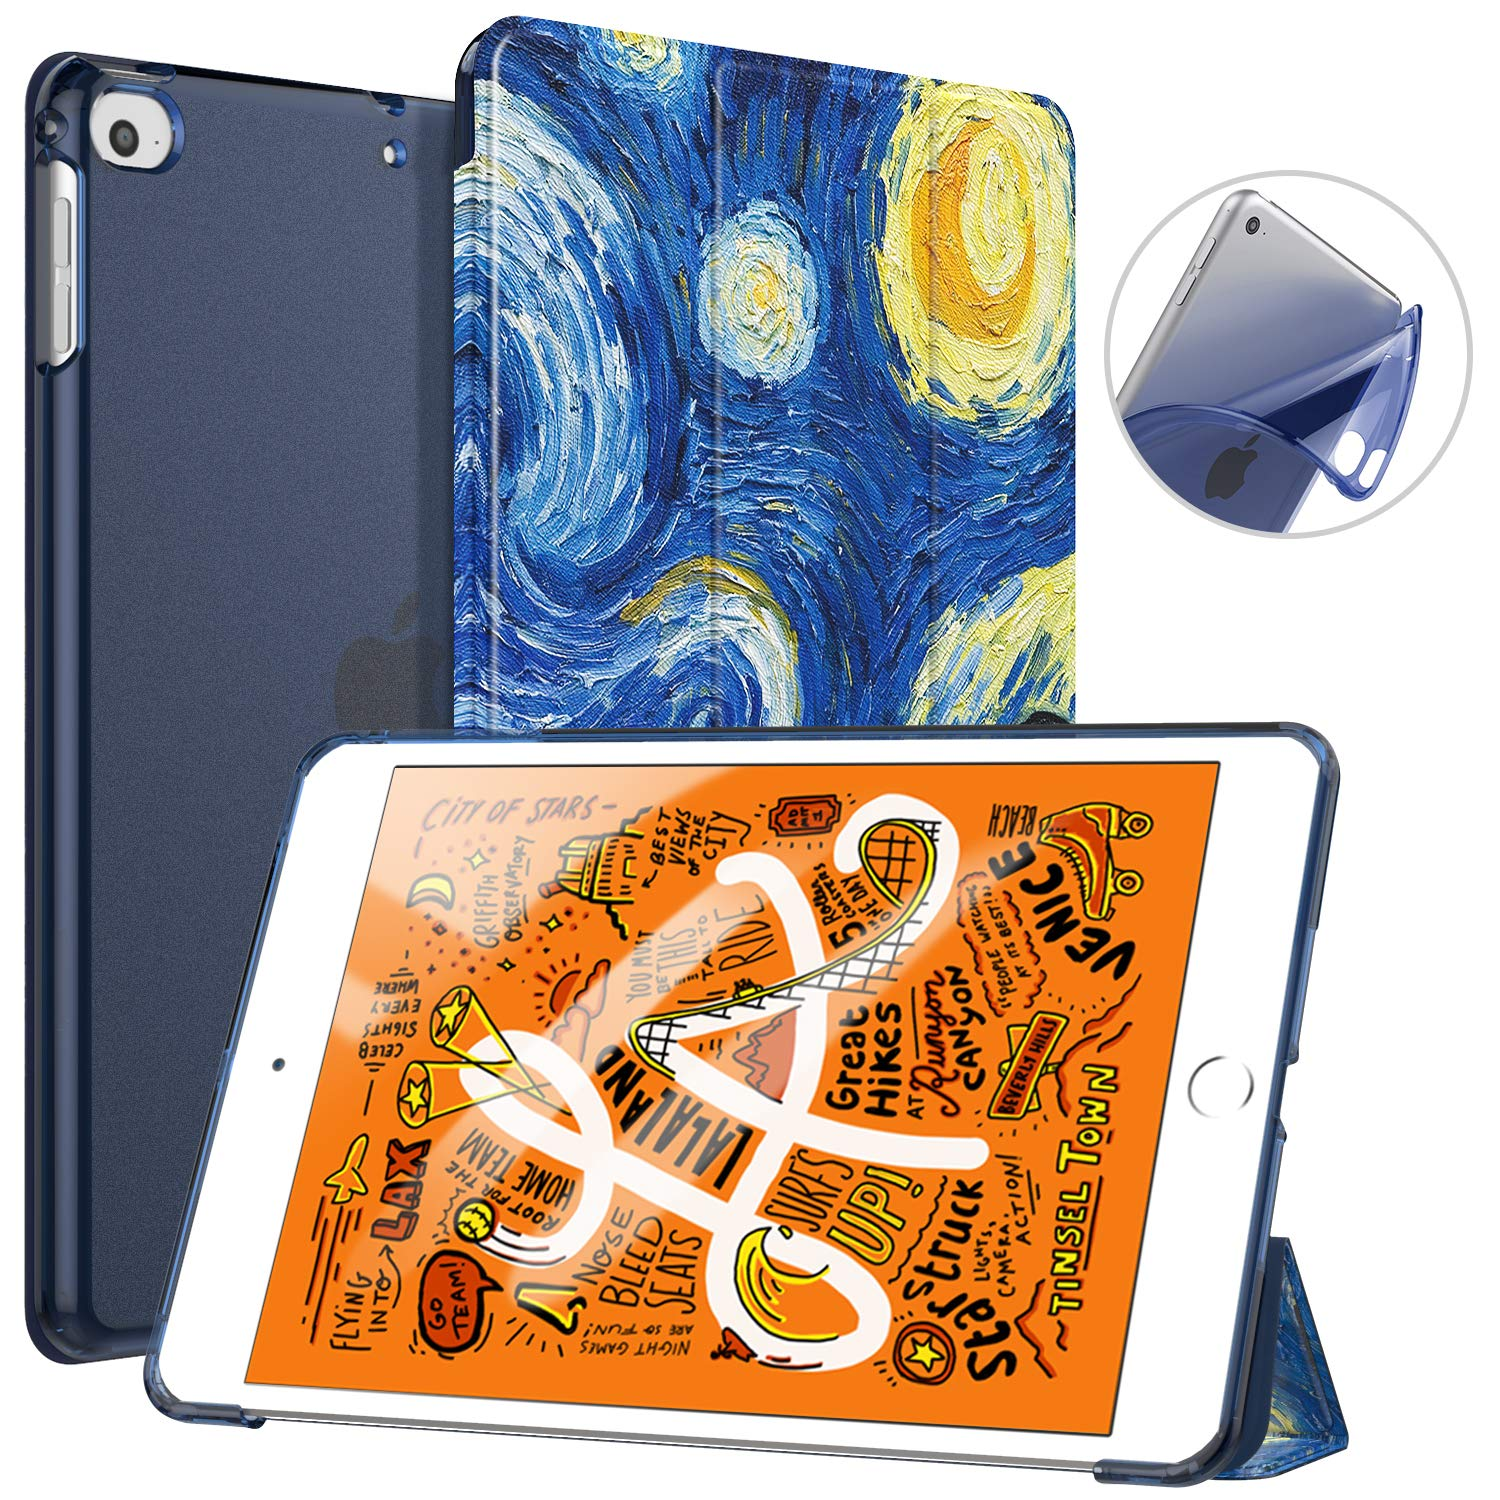 TiMOVO Cover Compatible for New iPad Mini 5th Generation 2019 Case, Slim Soft TPU Translucent Frosted Back Protector Cover Shell with Auto Wake/Sleep, Smart Cover Fit iPad Mini 5 2019, Starry Night